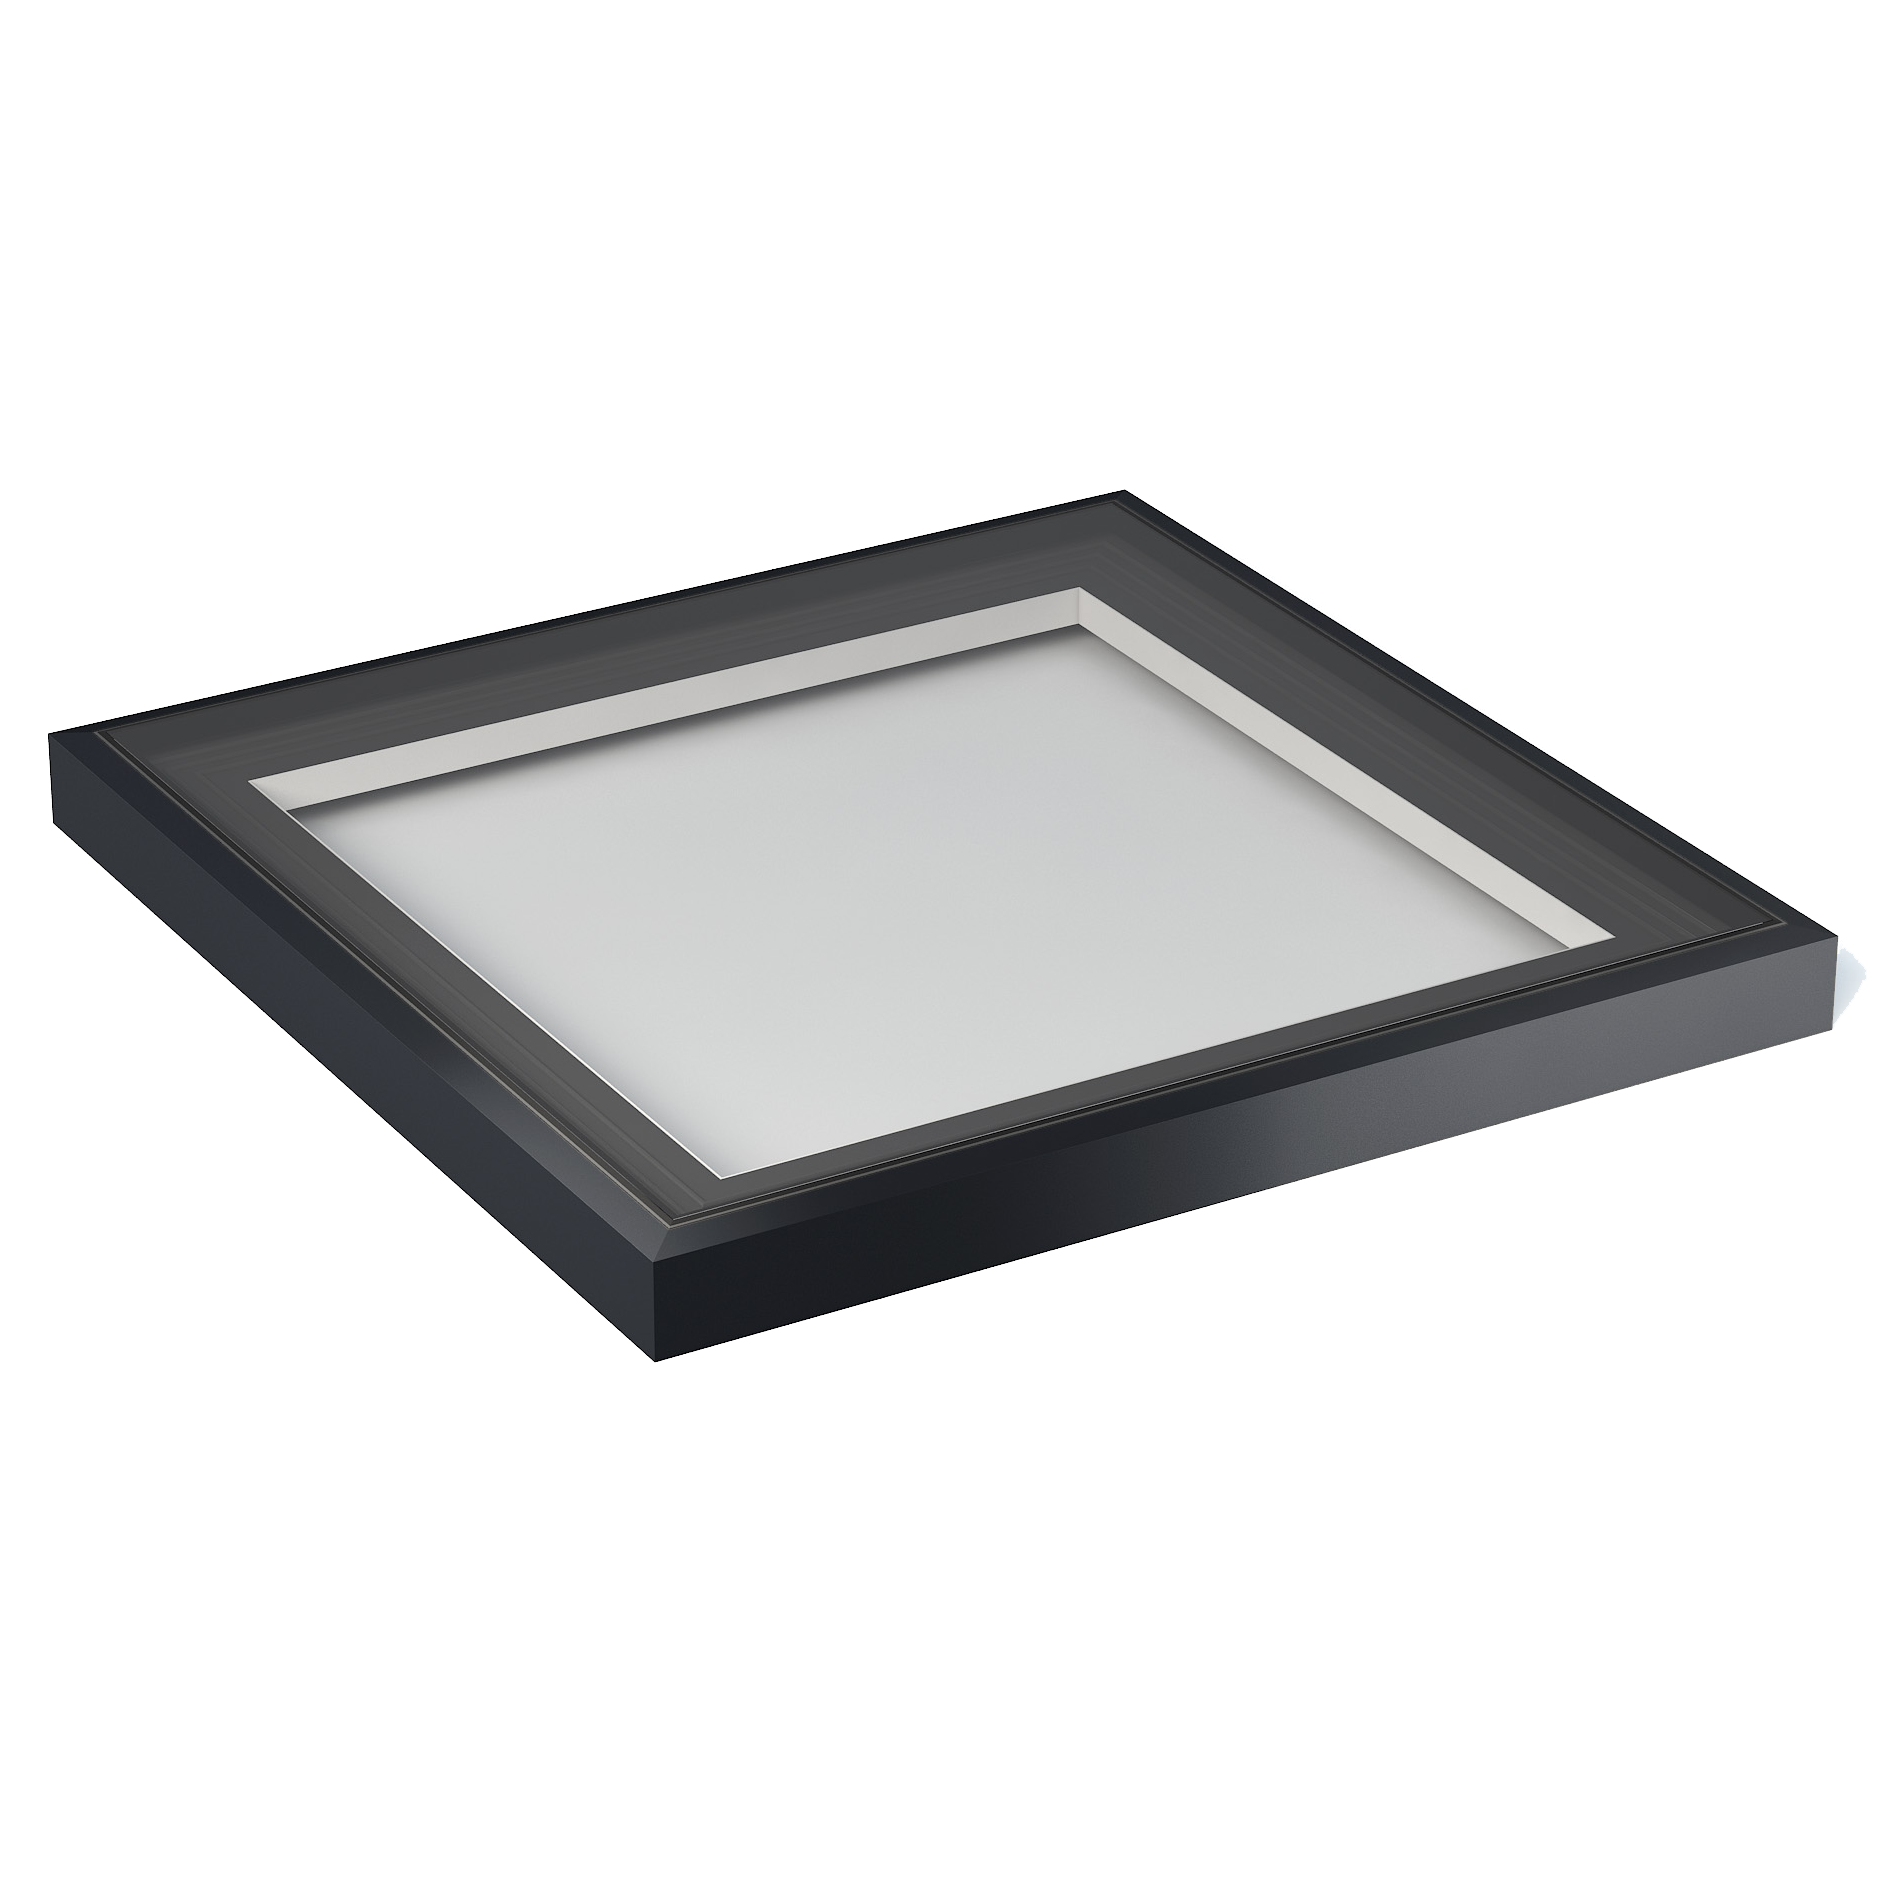 Flat Rooflights (1000mm x 1000mm | Anthracite Grey)